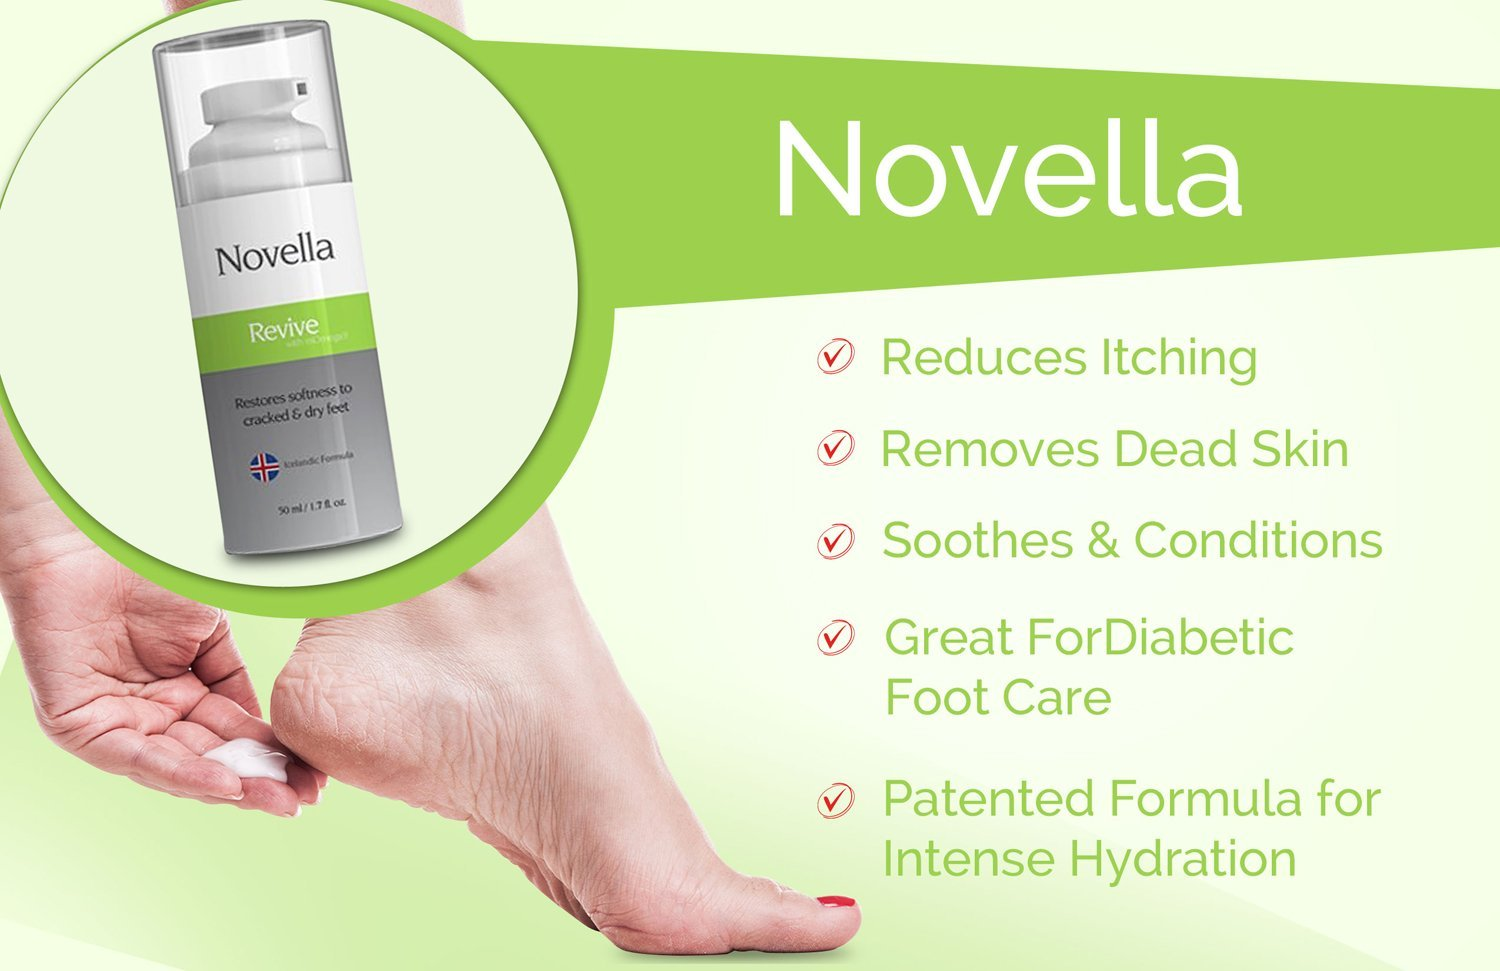 Omnipharma Launched Novella Revive Foot Care Cream